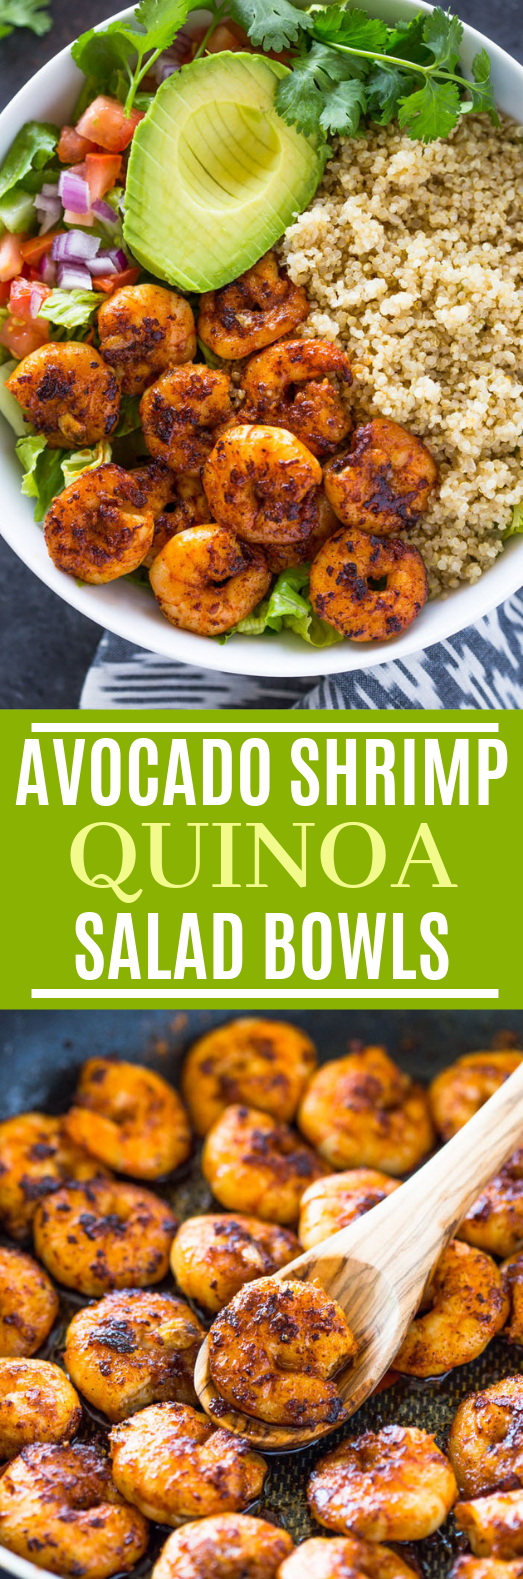 Shrimp Avocado Quinoa Bowls #healthy #lowcarb